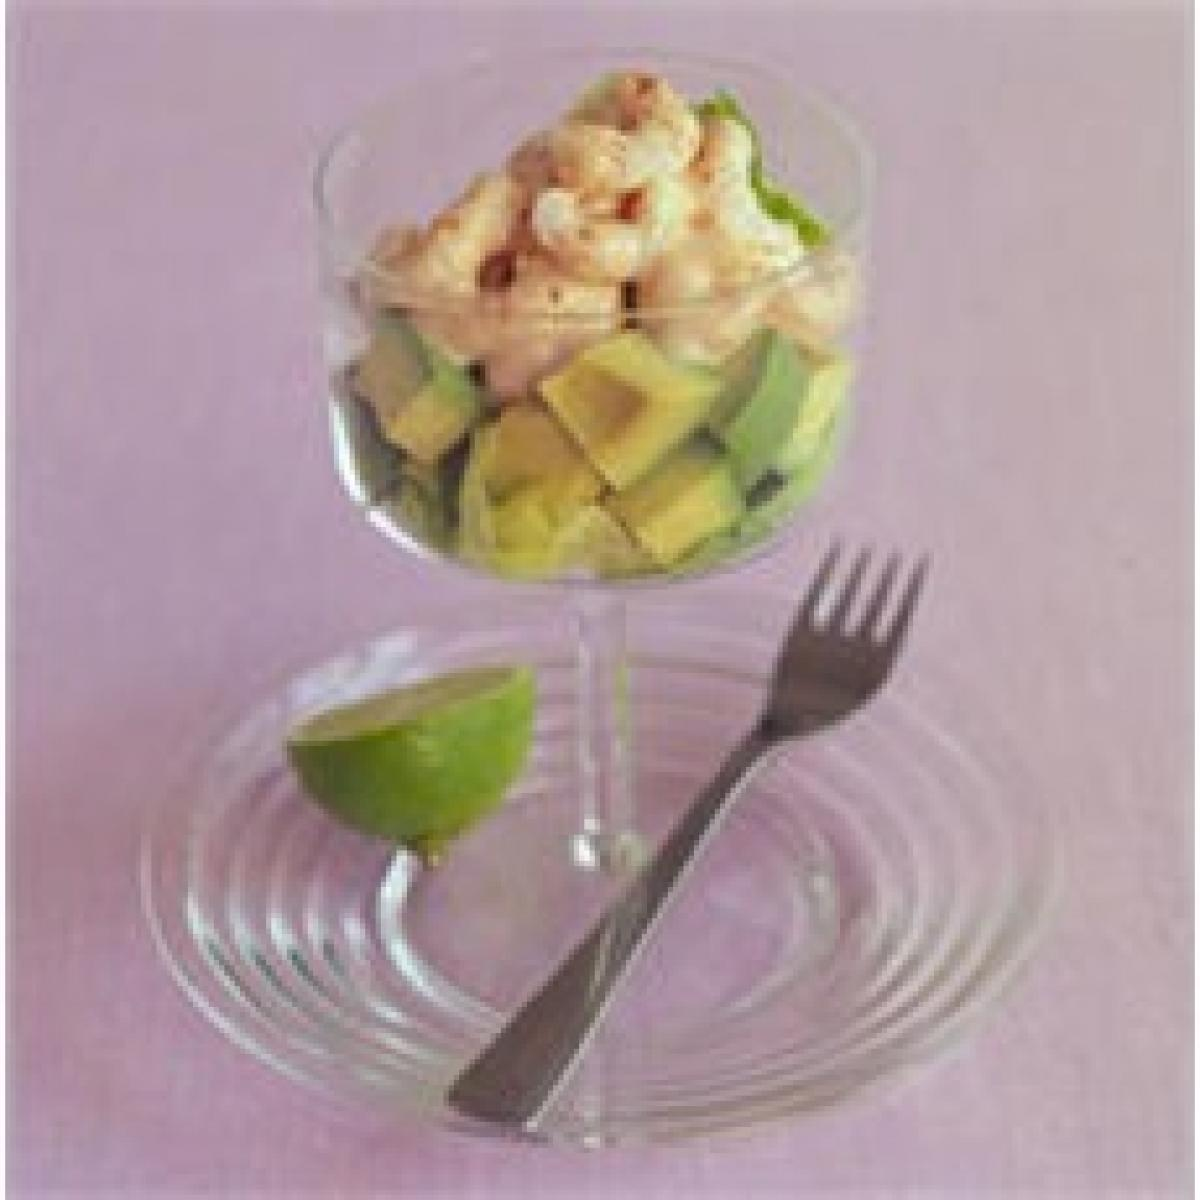 A picture of Delia's Prawn Cocktail recipe